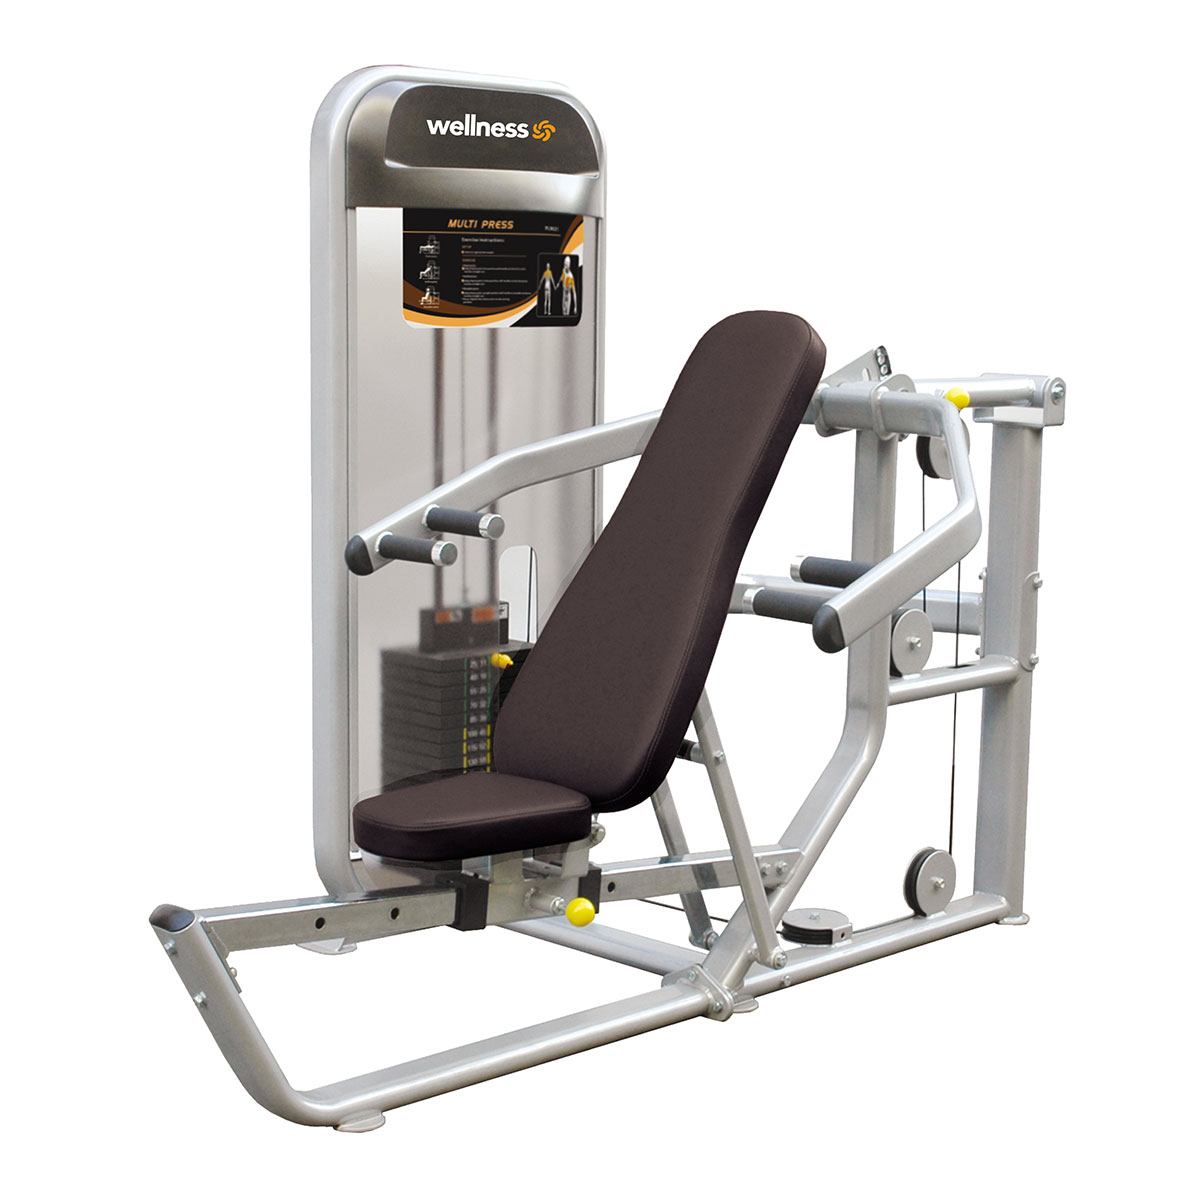 Multi Press  - Plamax Dual Series Wellness